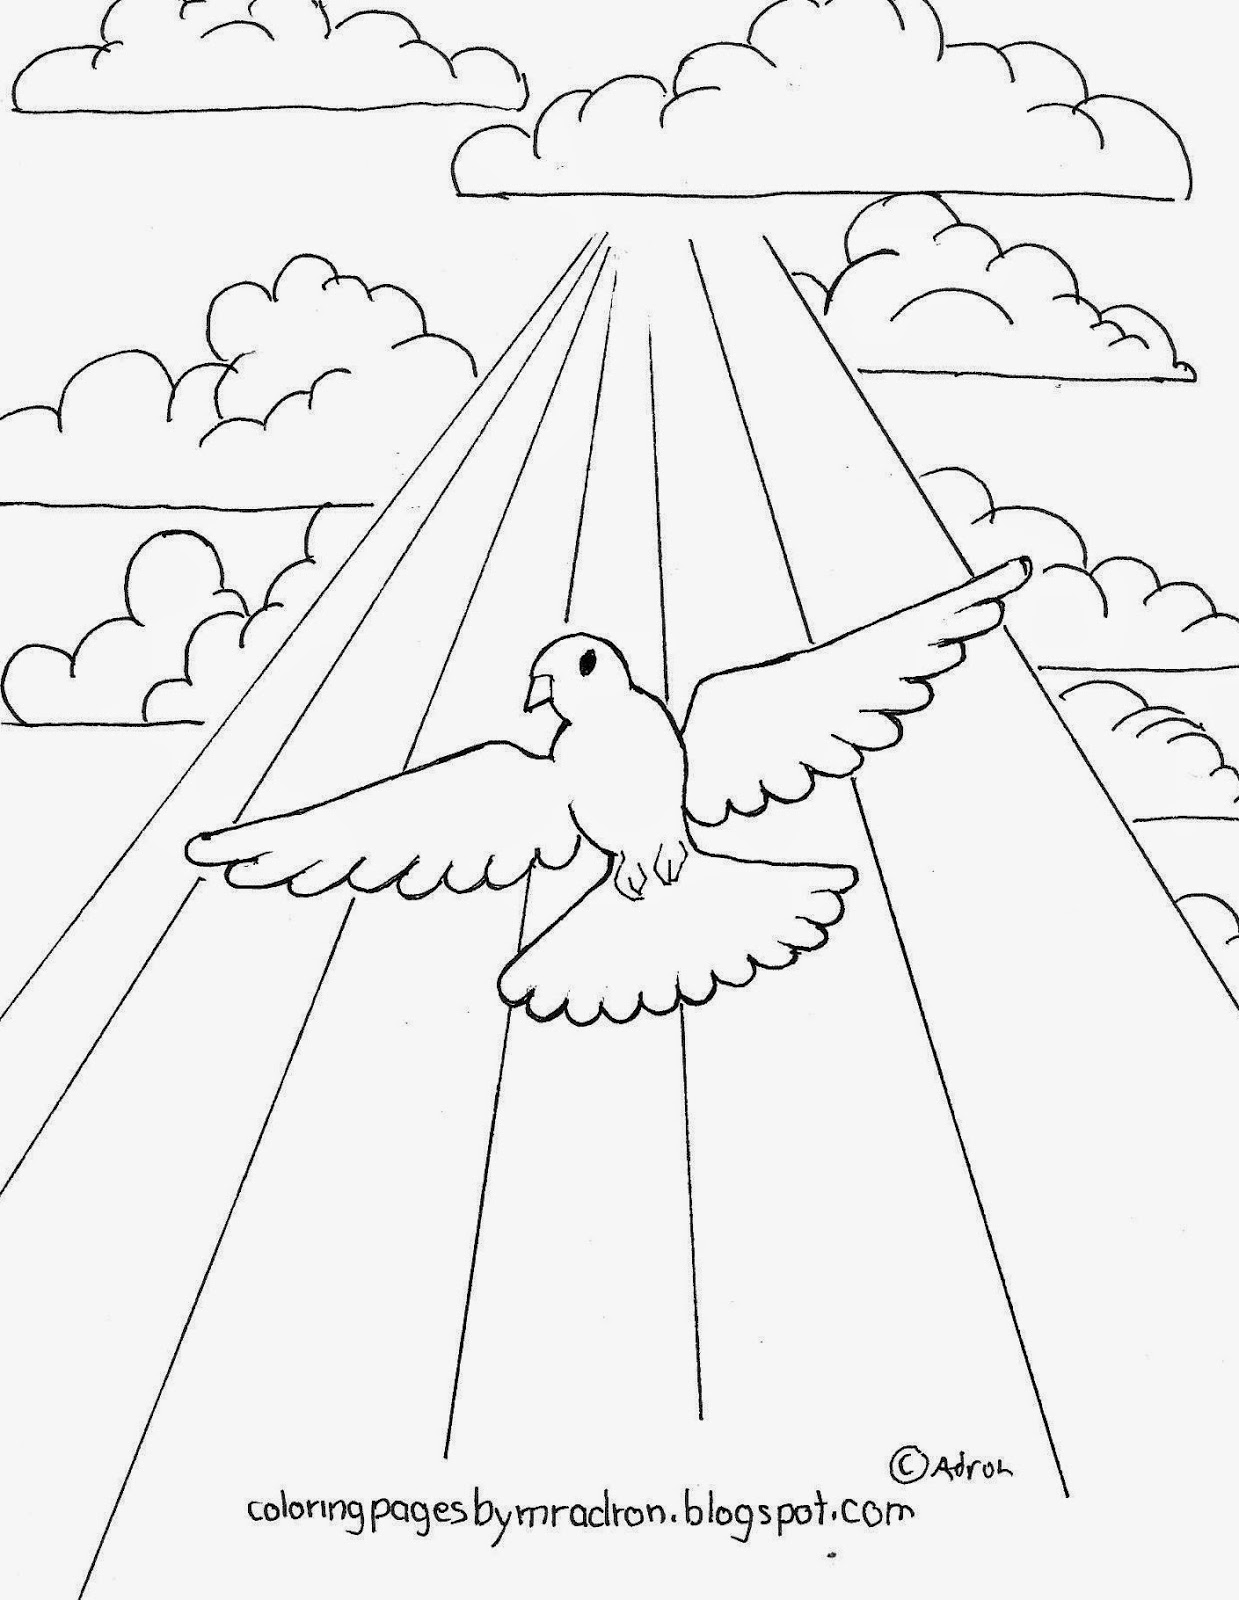 A drawing of a dove that can be printed and colored.